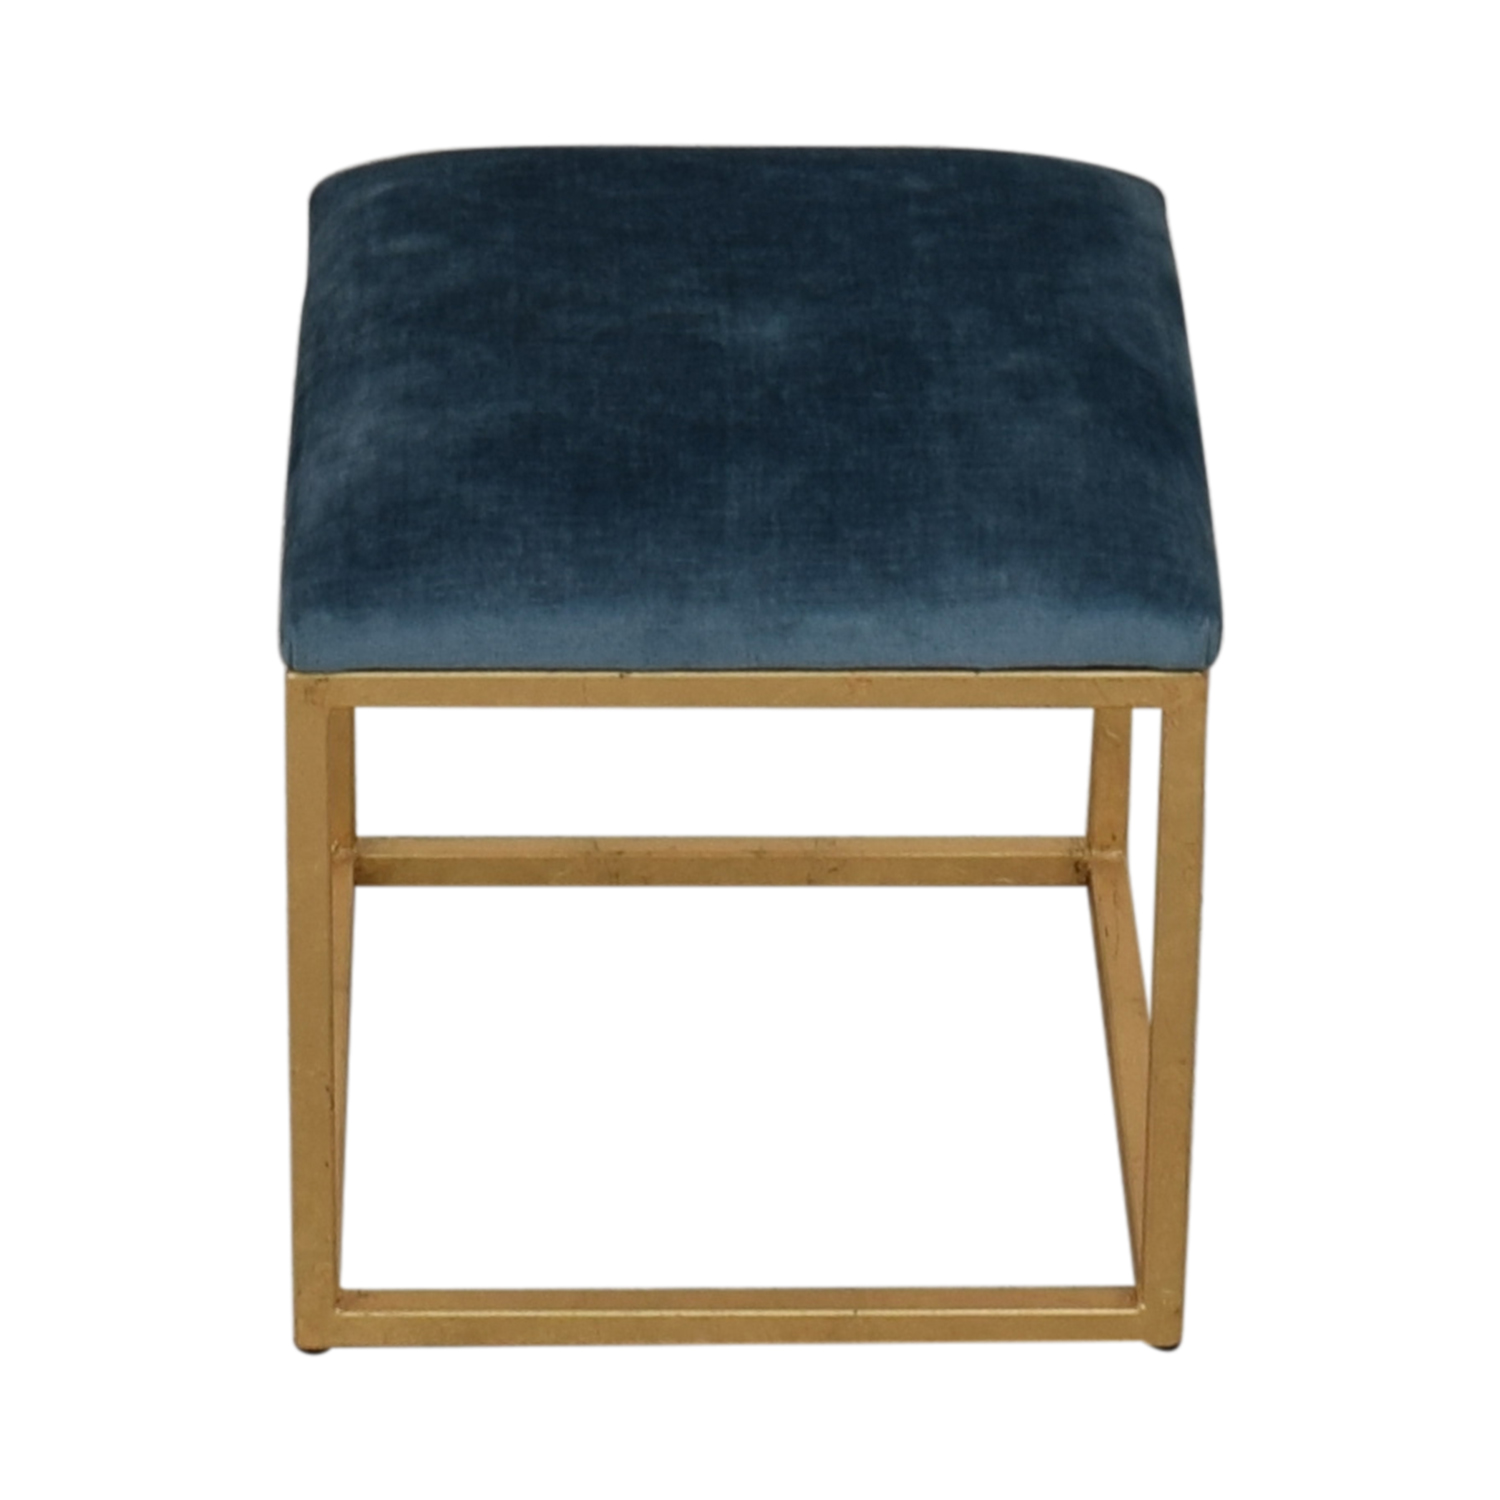 shop One Kings Lane One Kings Lane Moss Studio Block Velvet Ottoman online